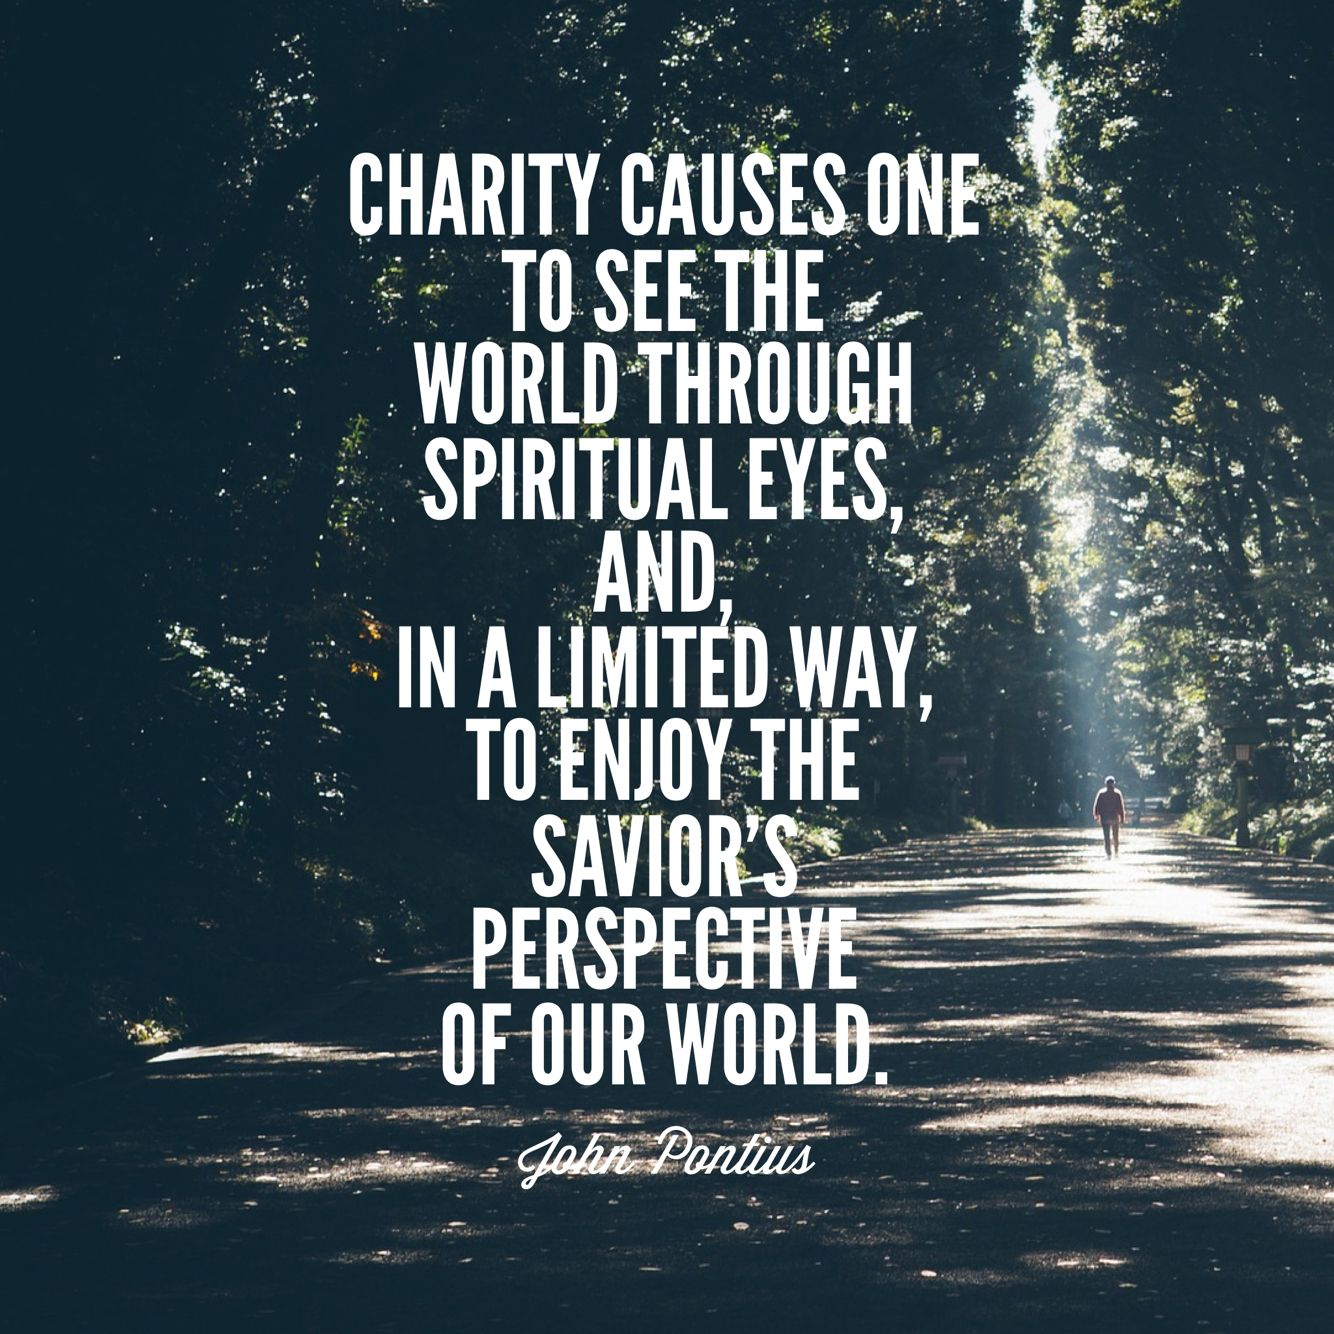 charity perspective quotes spiritual eyes christian quotes